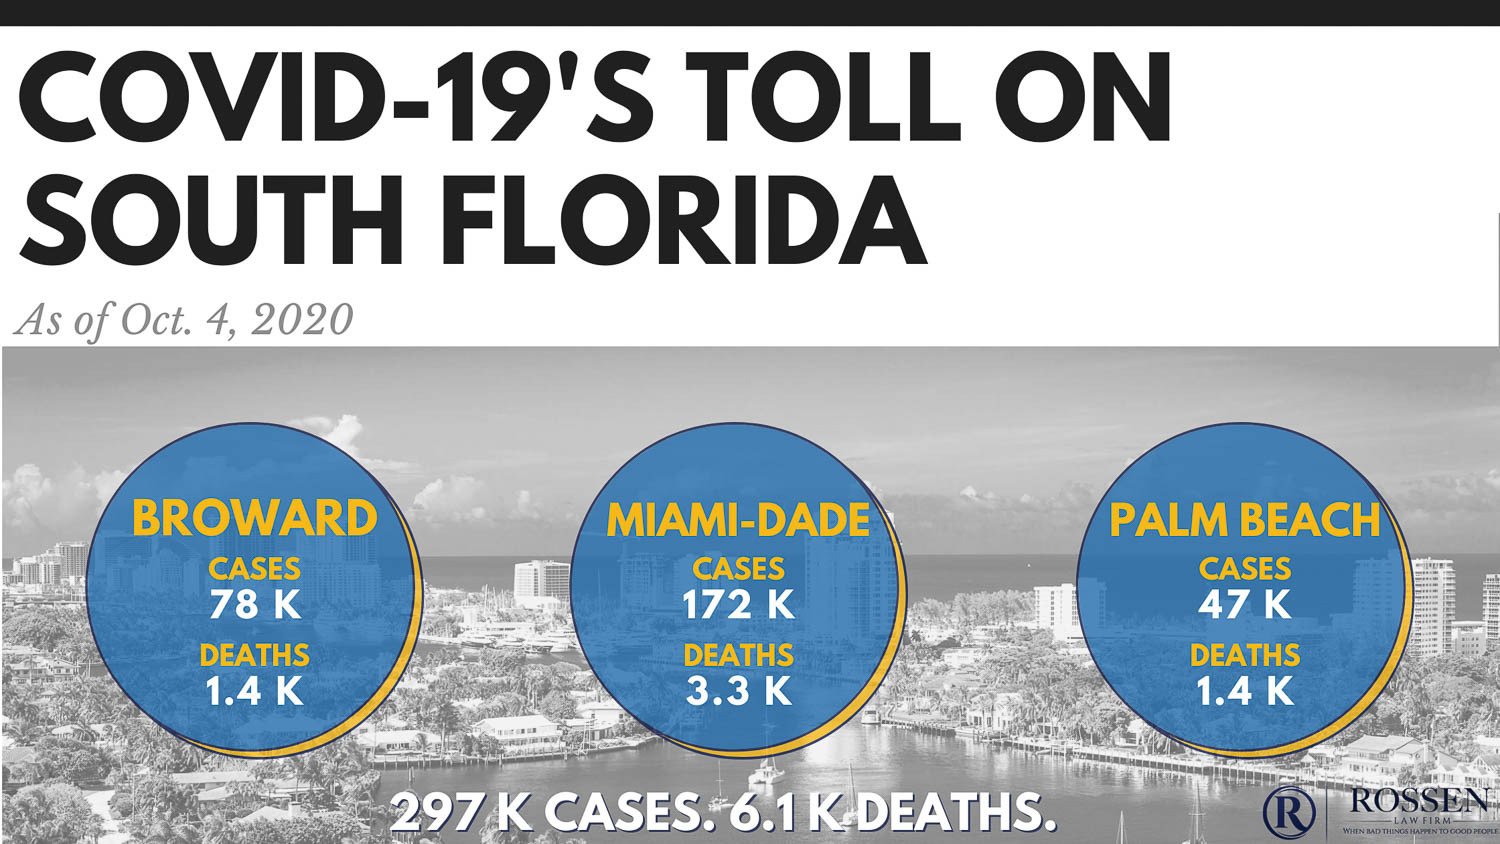 Covid-19 has had a significant toll on South Florida. This is an infographic that shows the number of COVID-19 cases in broward County, palm beach county, or miami-dade county. The infographic shows cases and deaths in south florida as the coronavirus pandemic rages on.